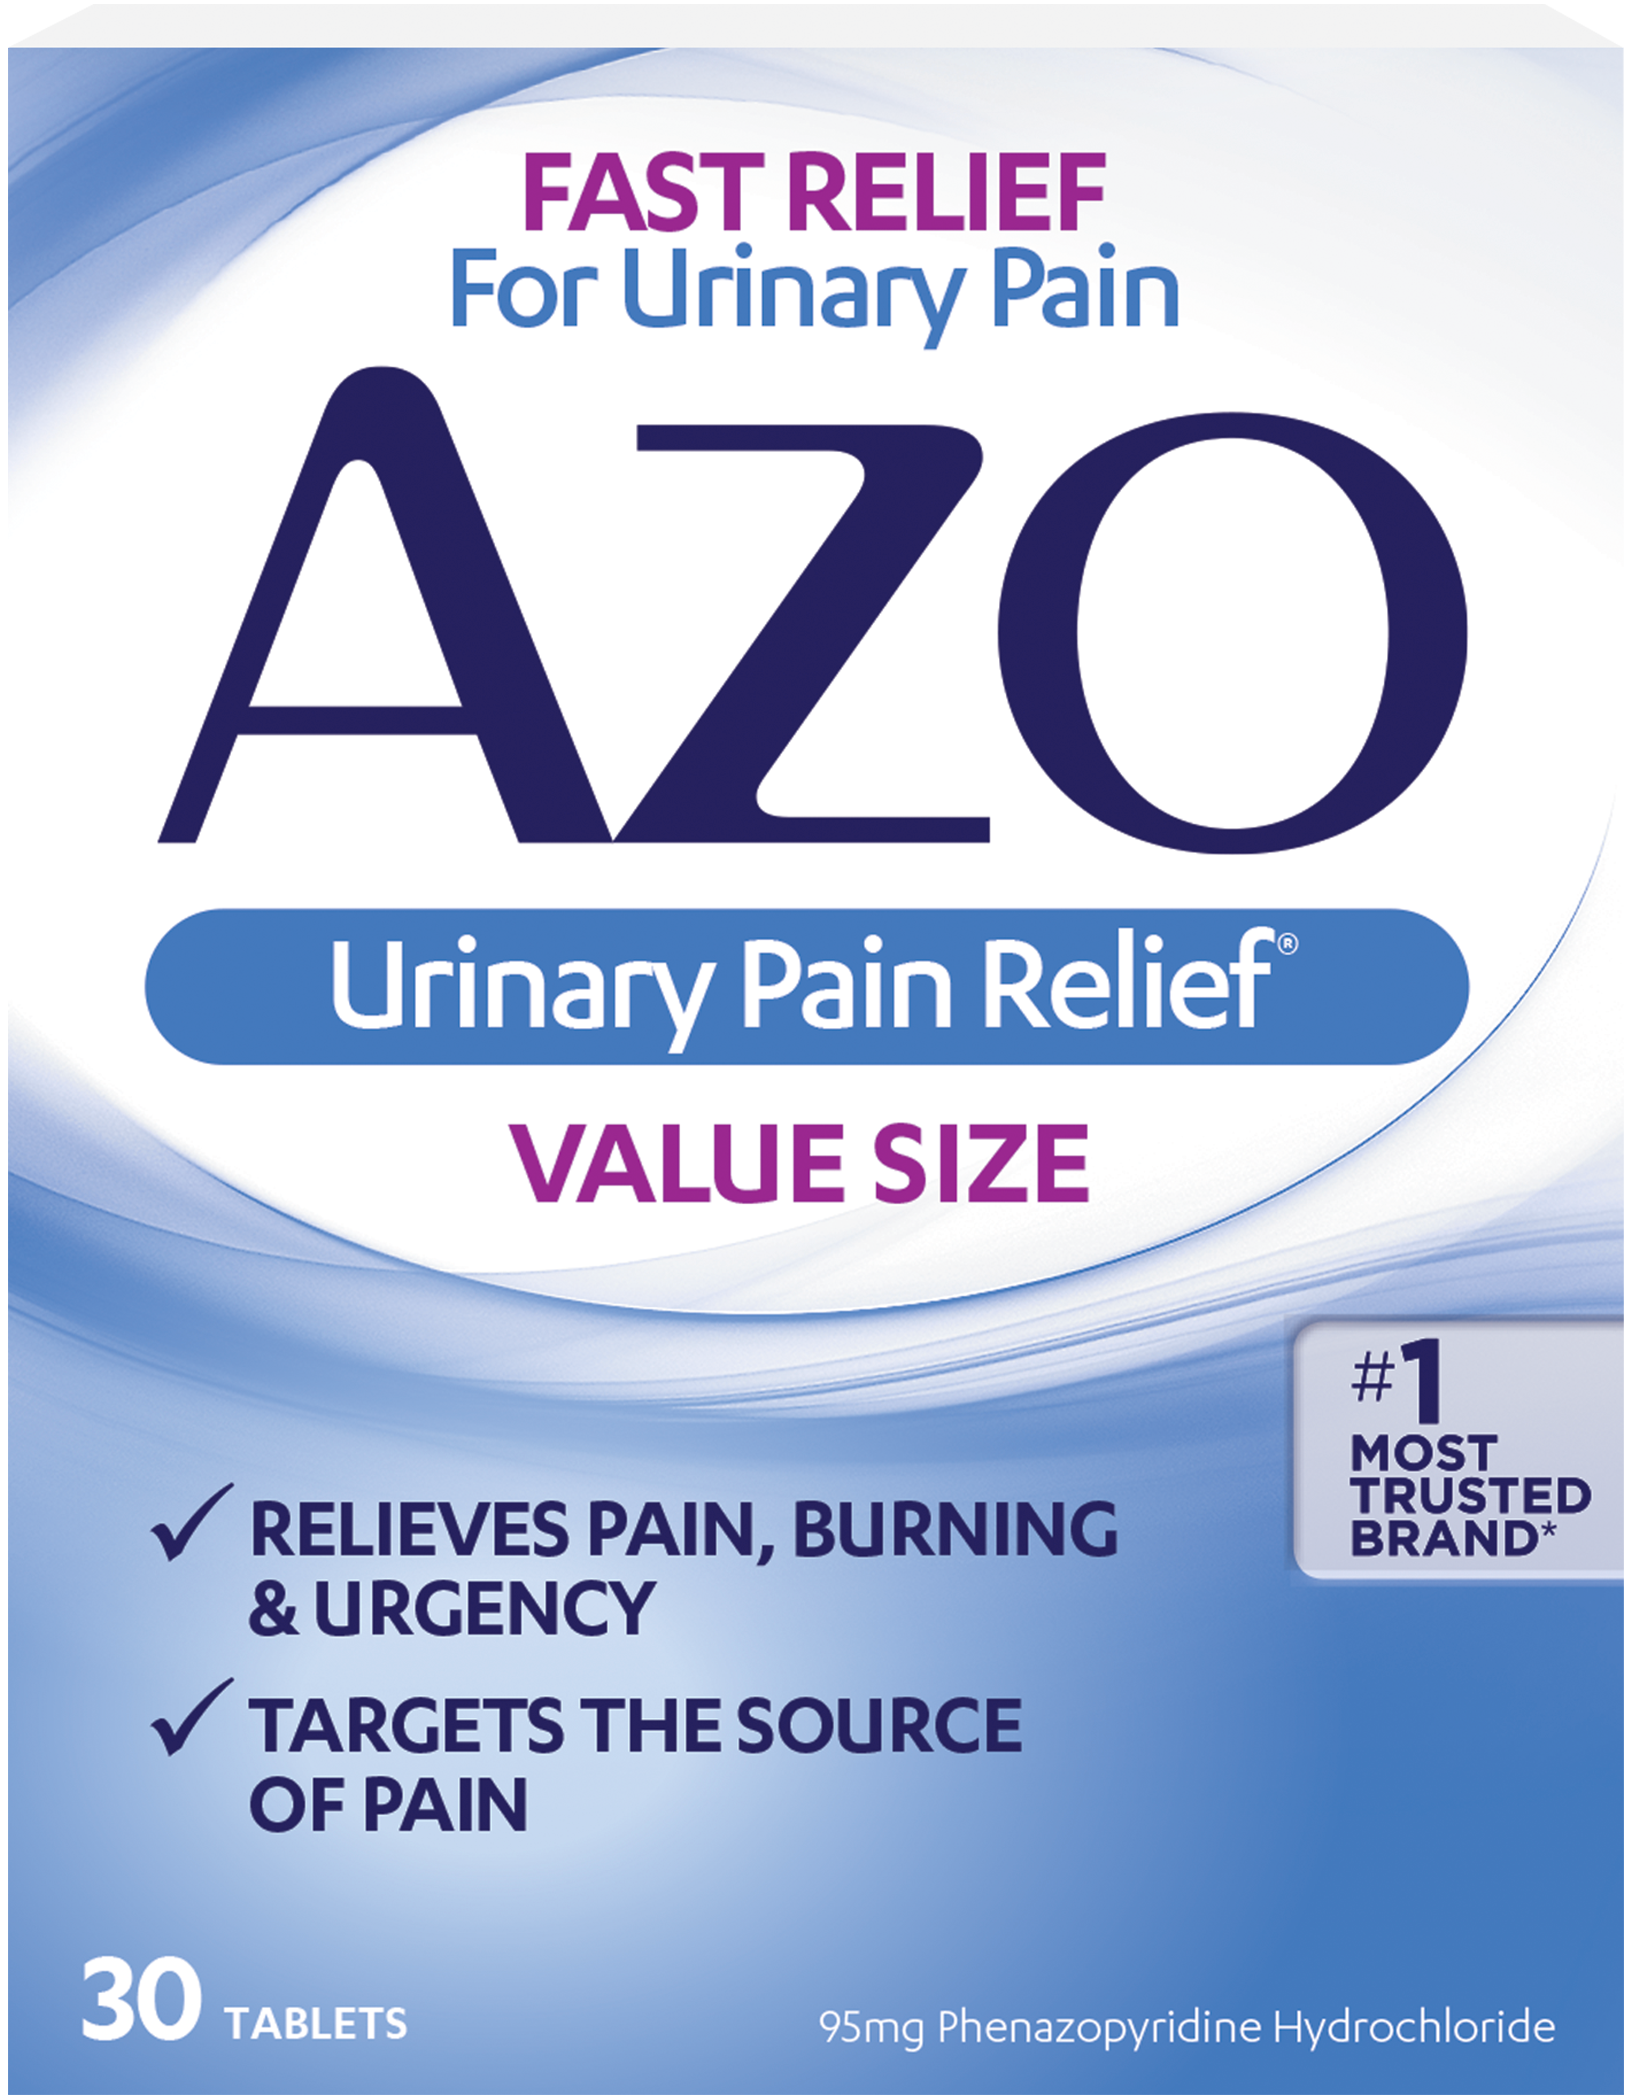 Azo Urinary Pain Relief 1 Most Trusted Brand For Uti Pain